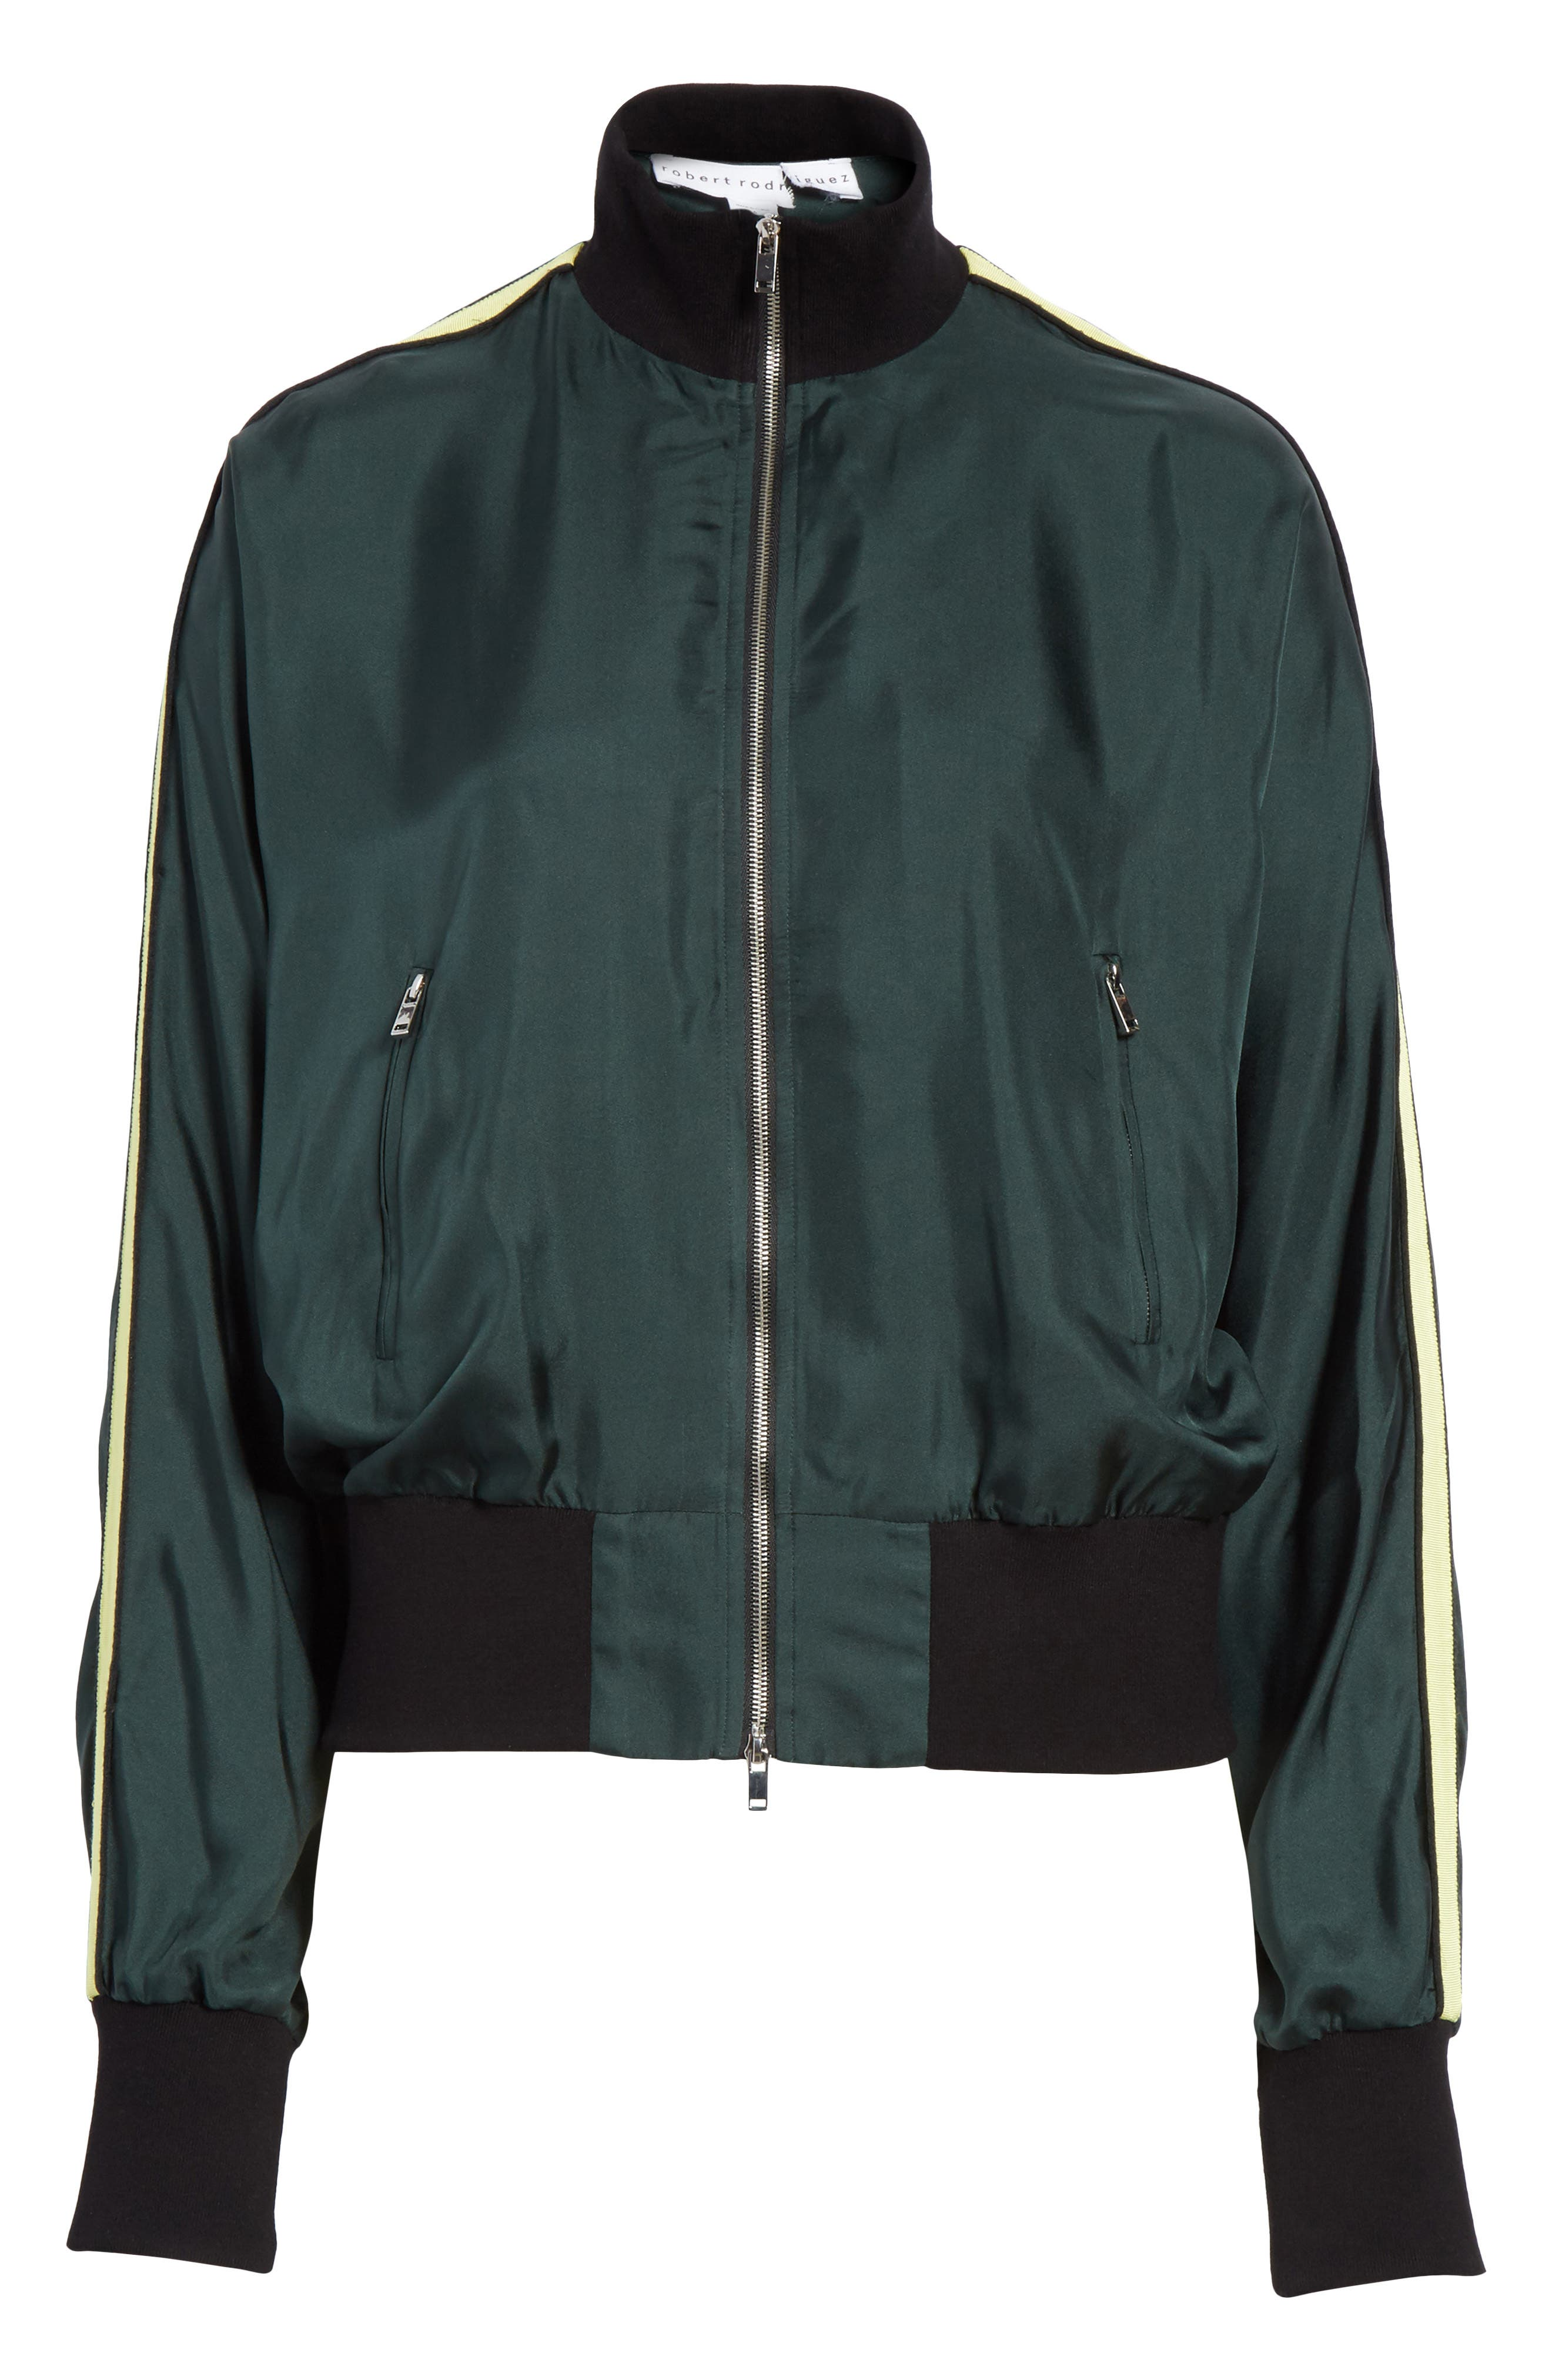 Silk Track Jacket,                             Alternate thumbnail 10, color,                             Green